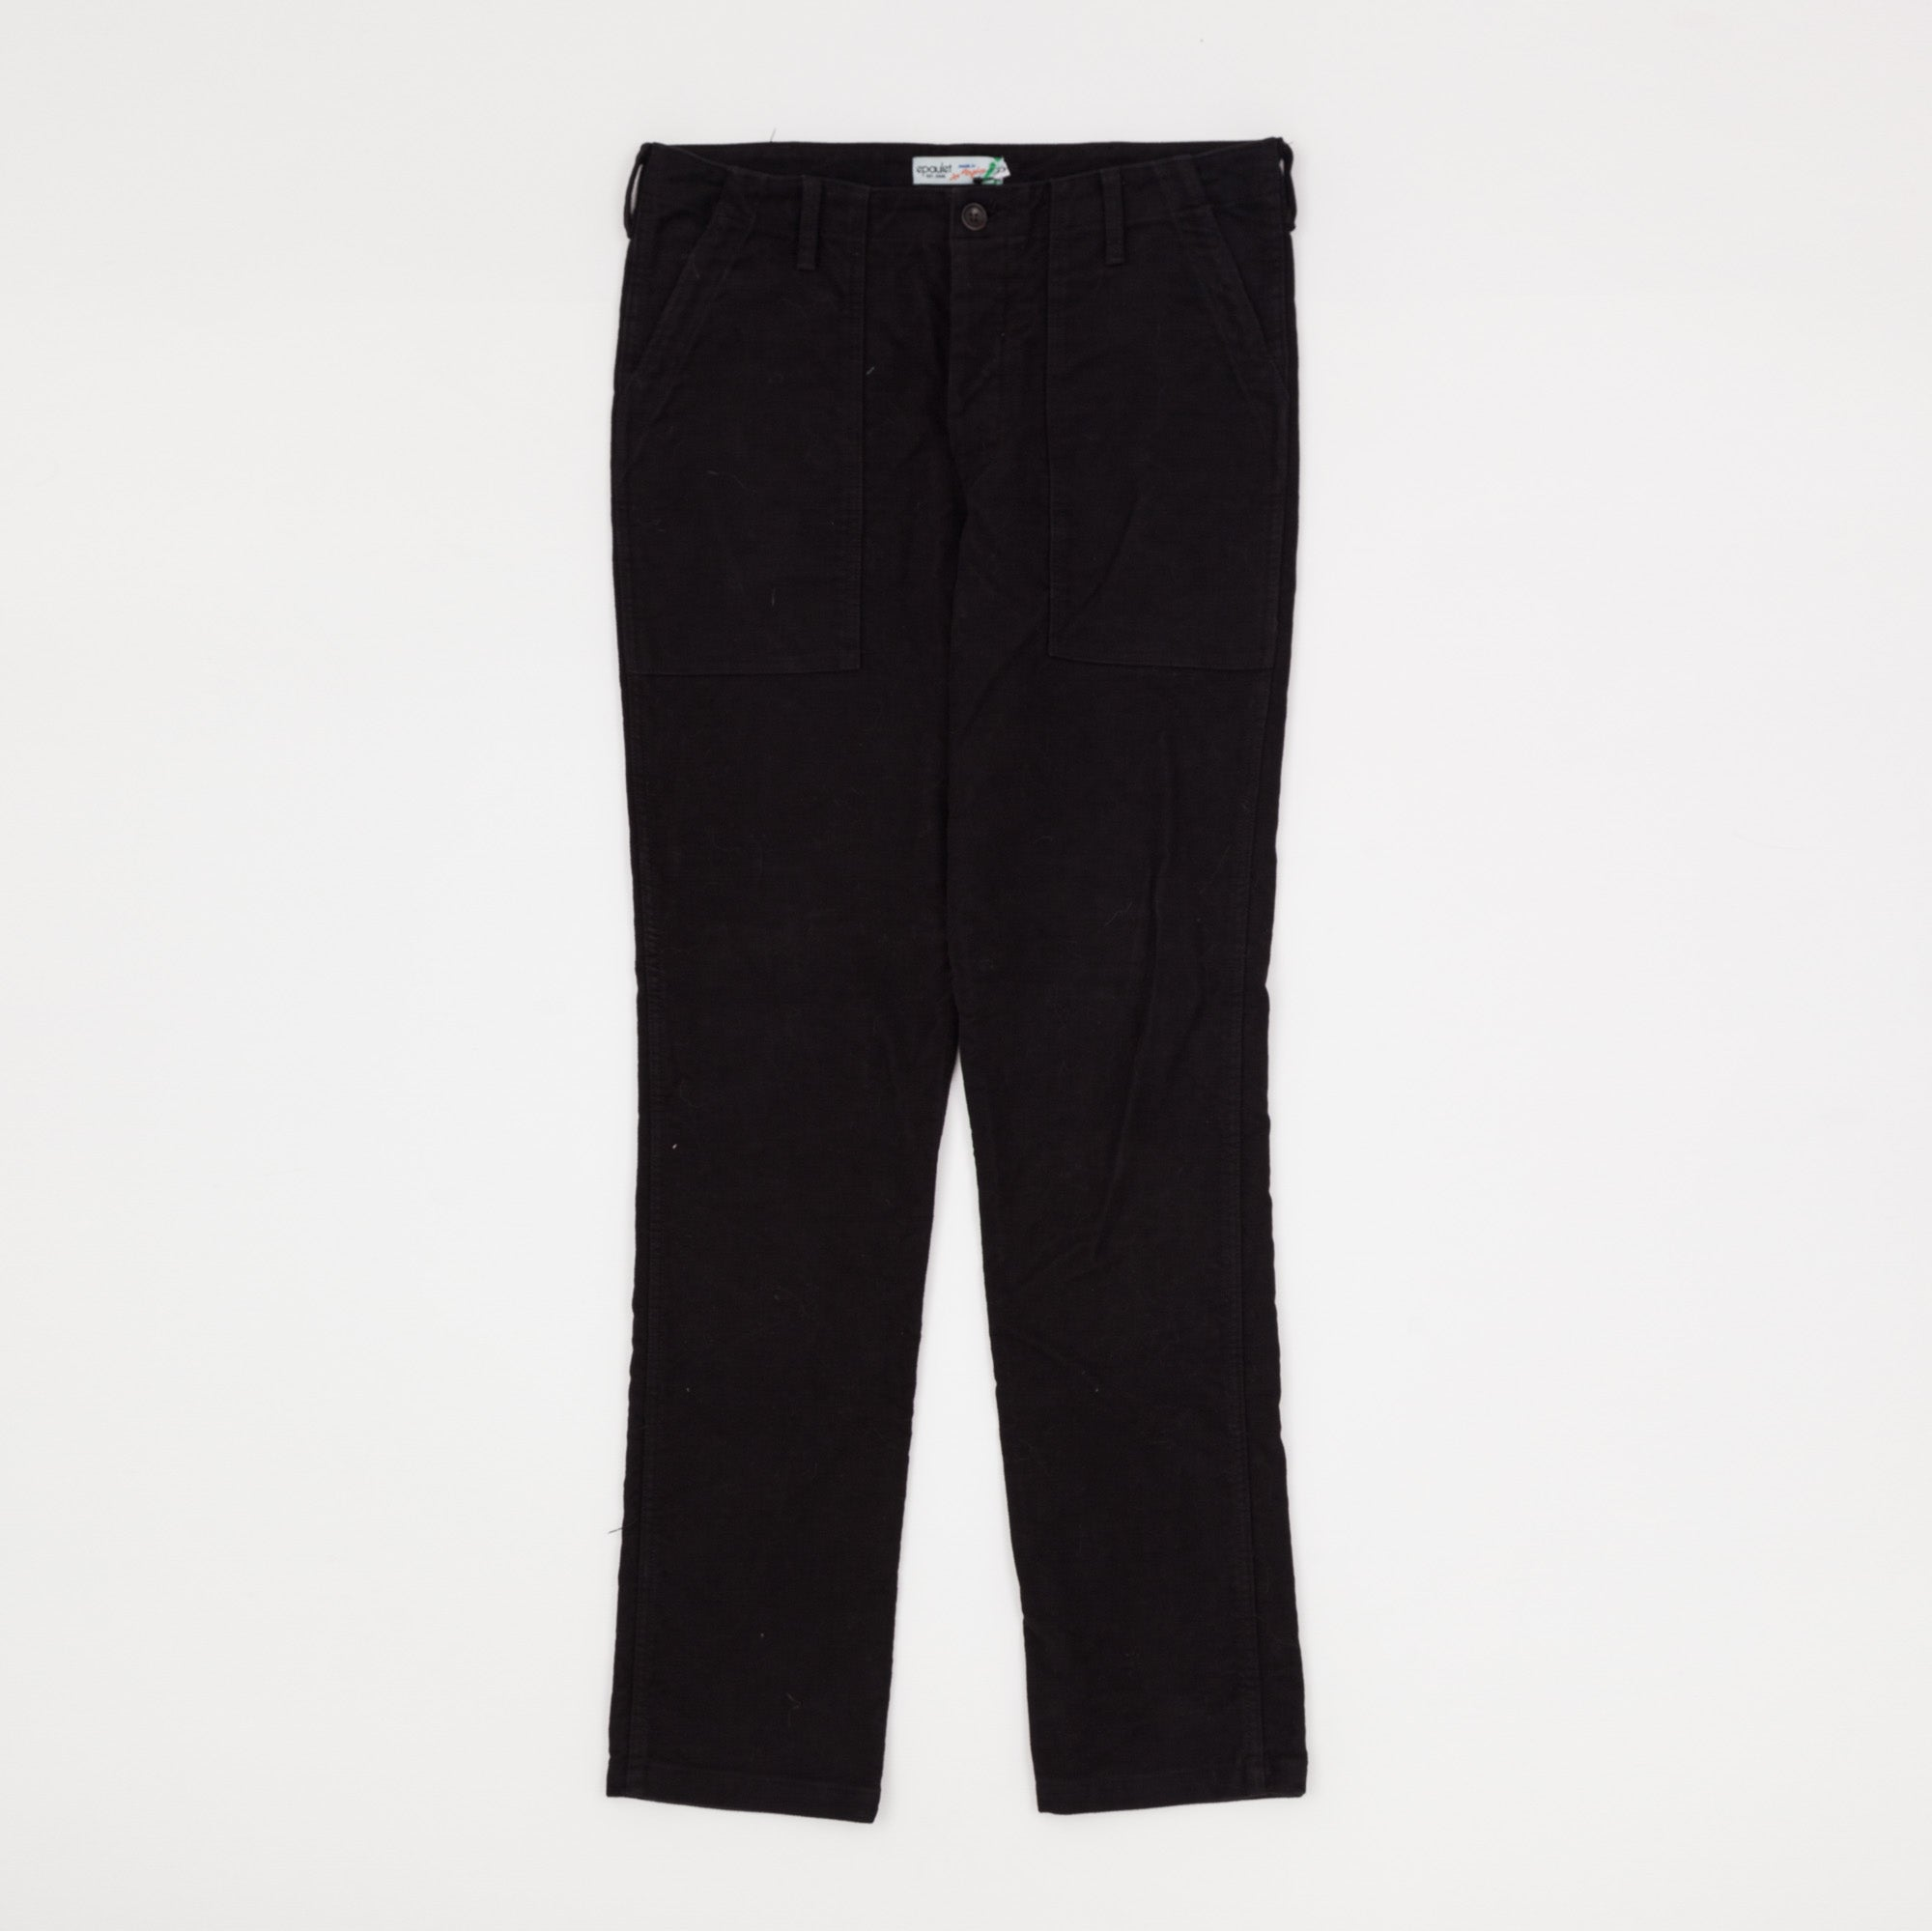 Epaulet Moleskin Fatigue Pants